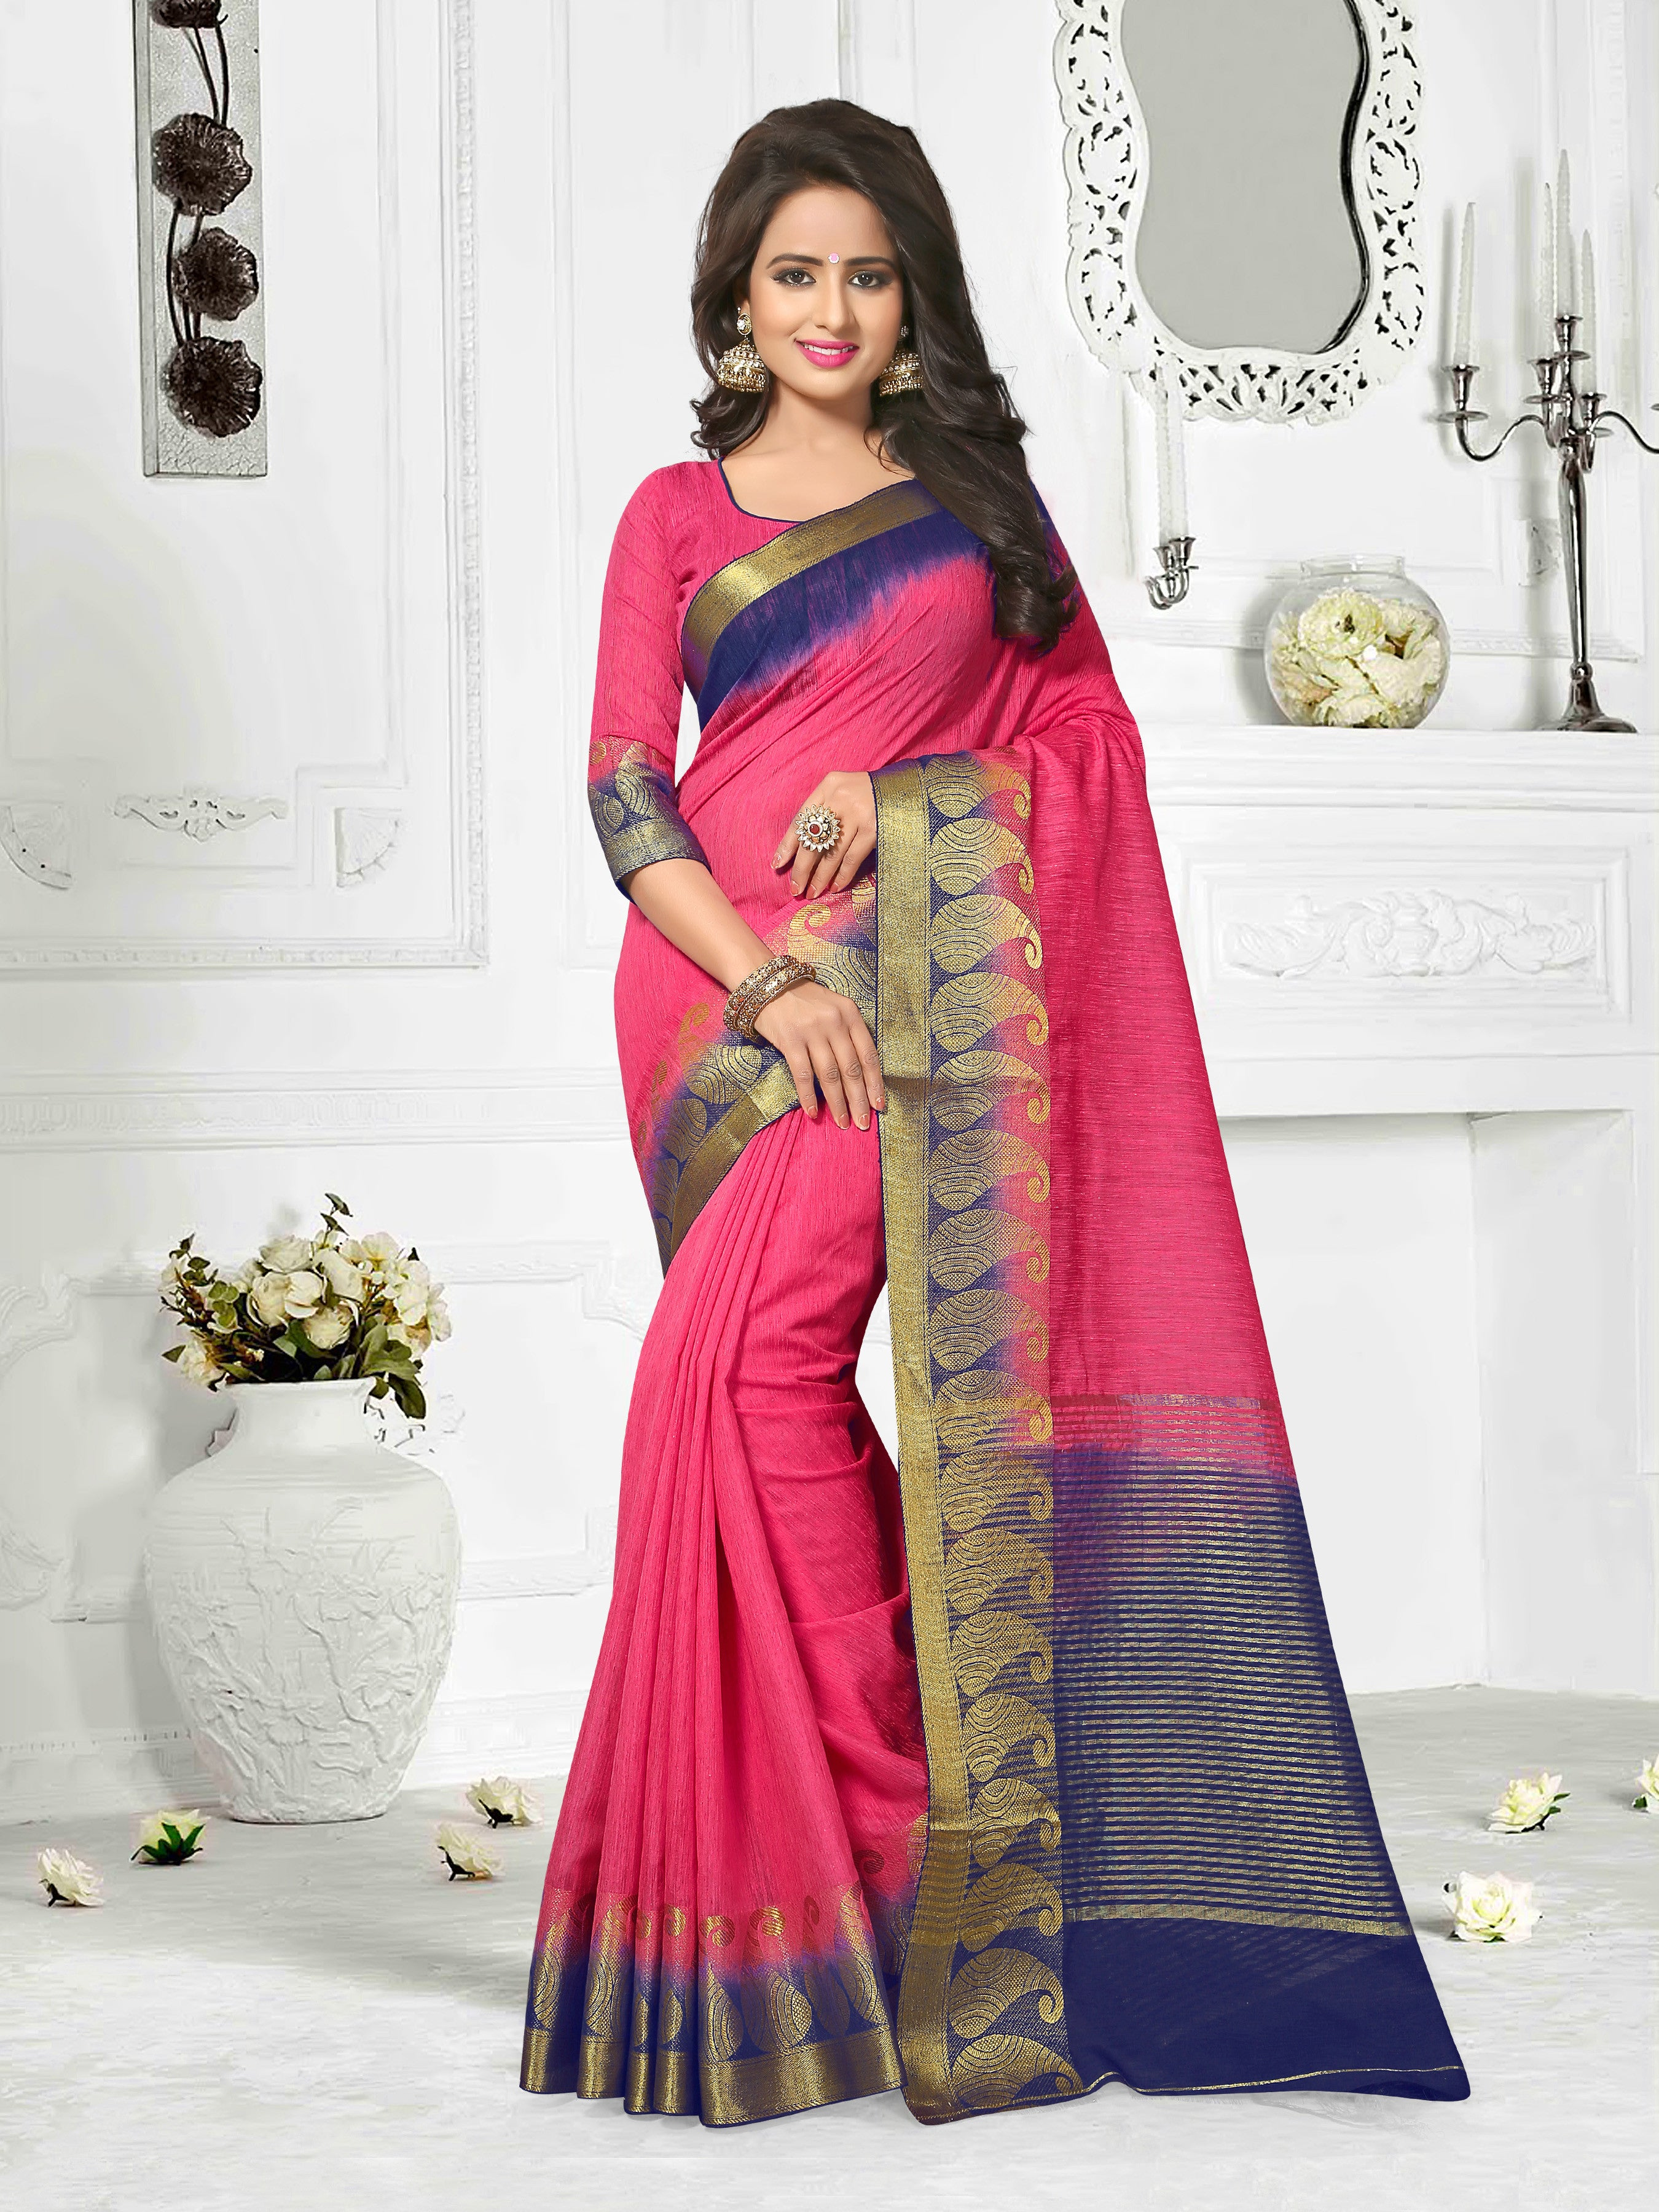 Cotton Jute Saree Collection.